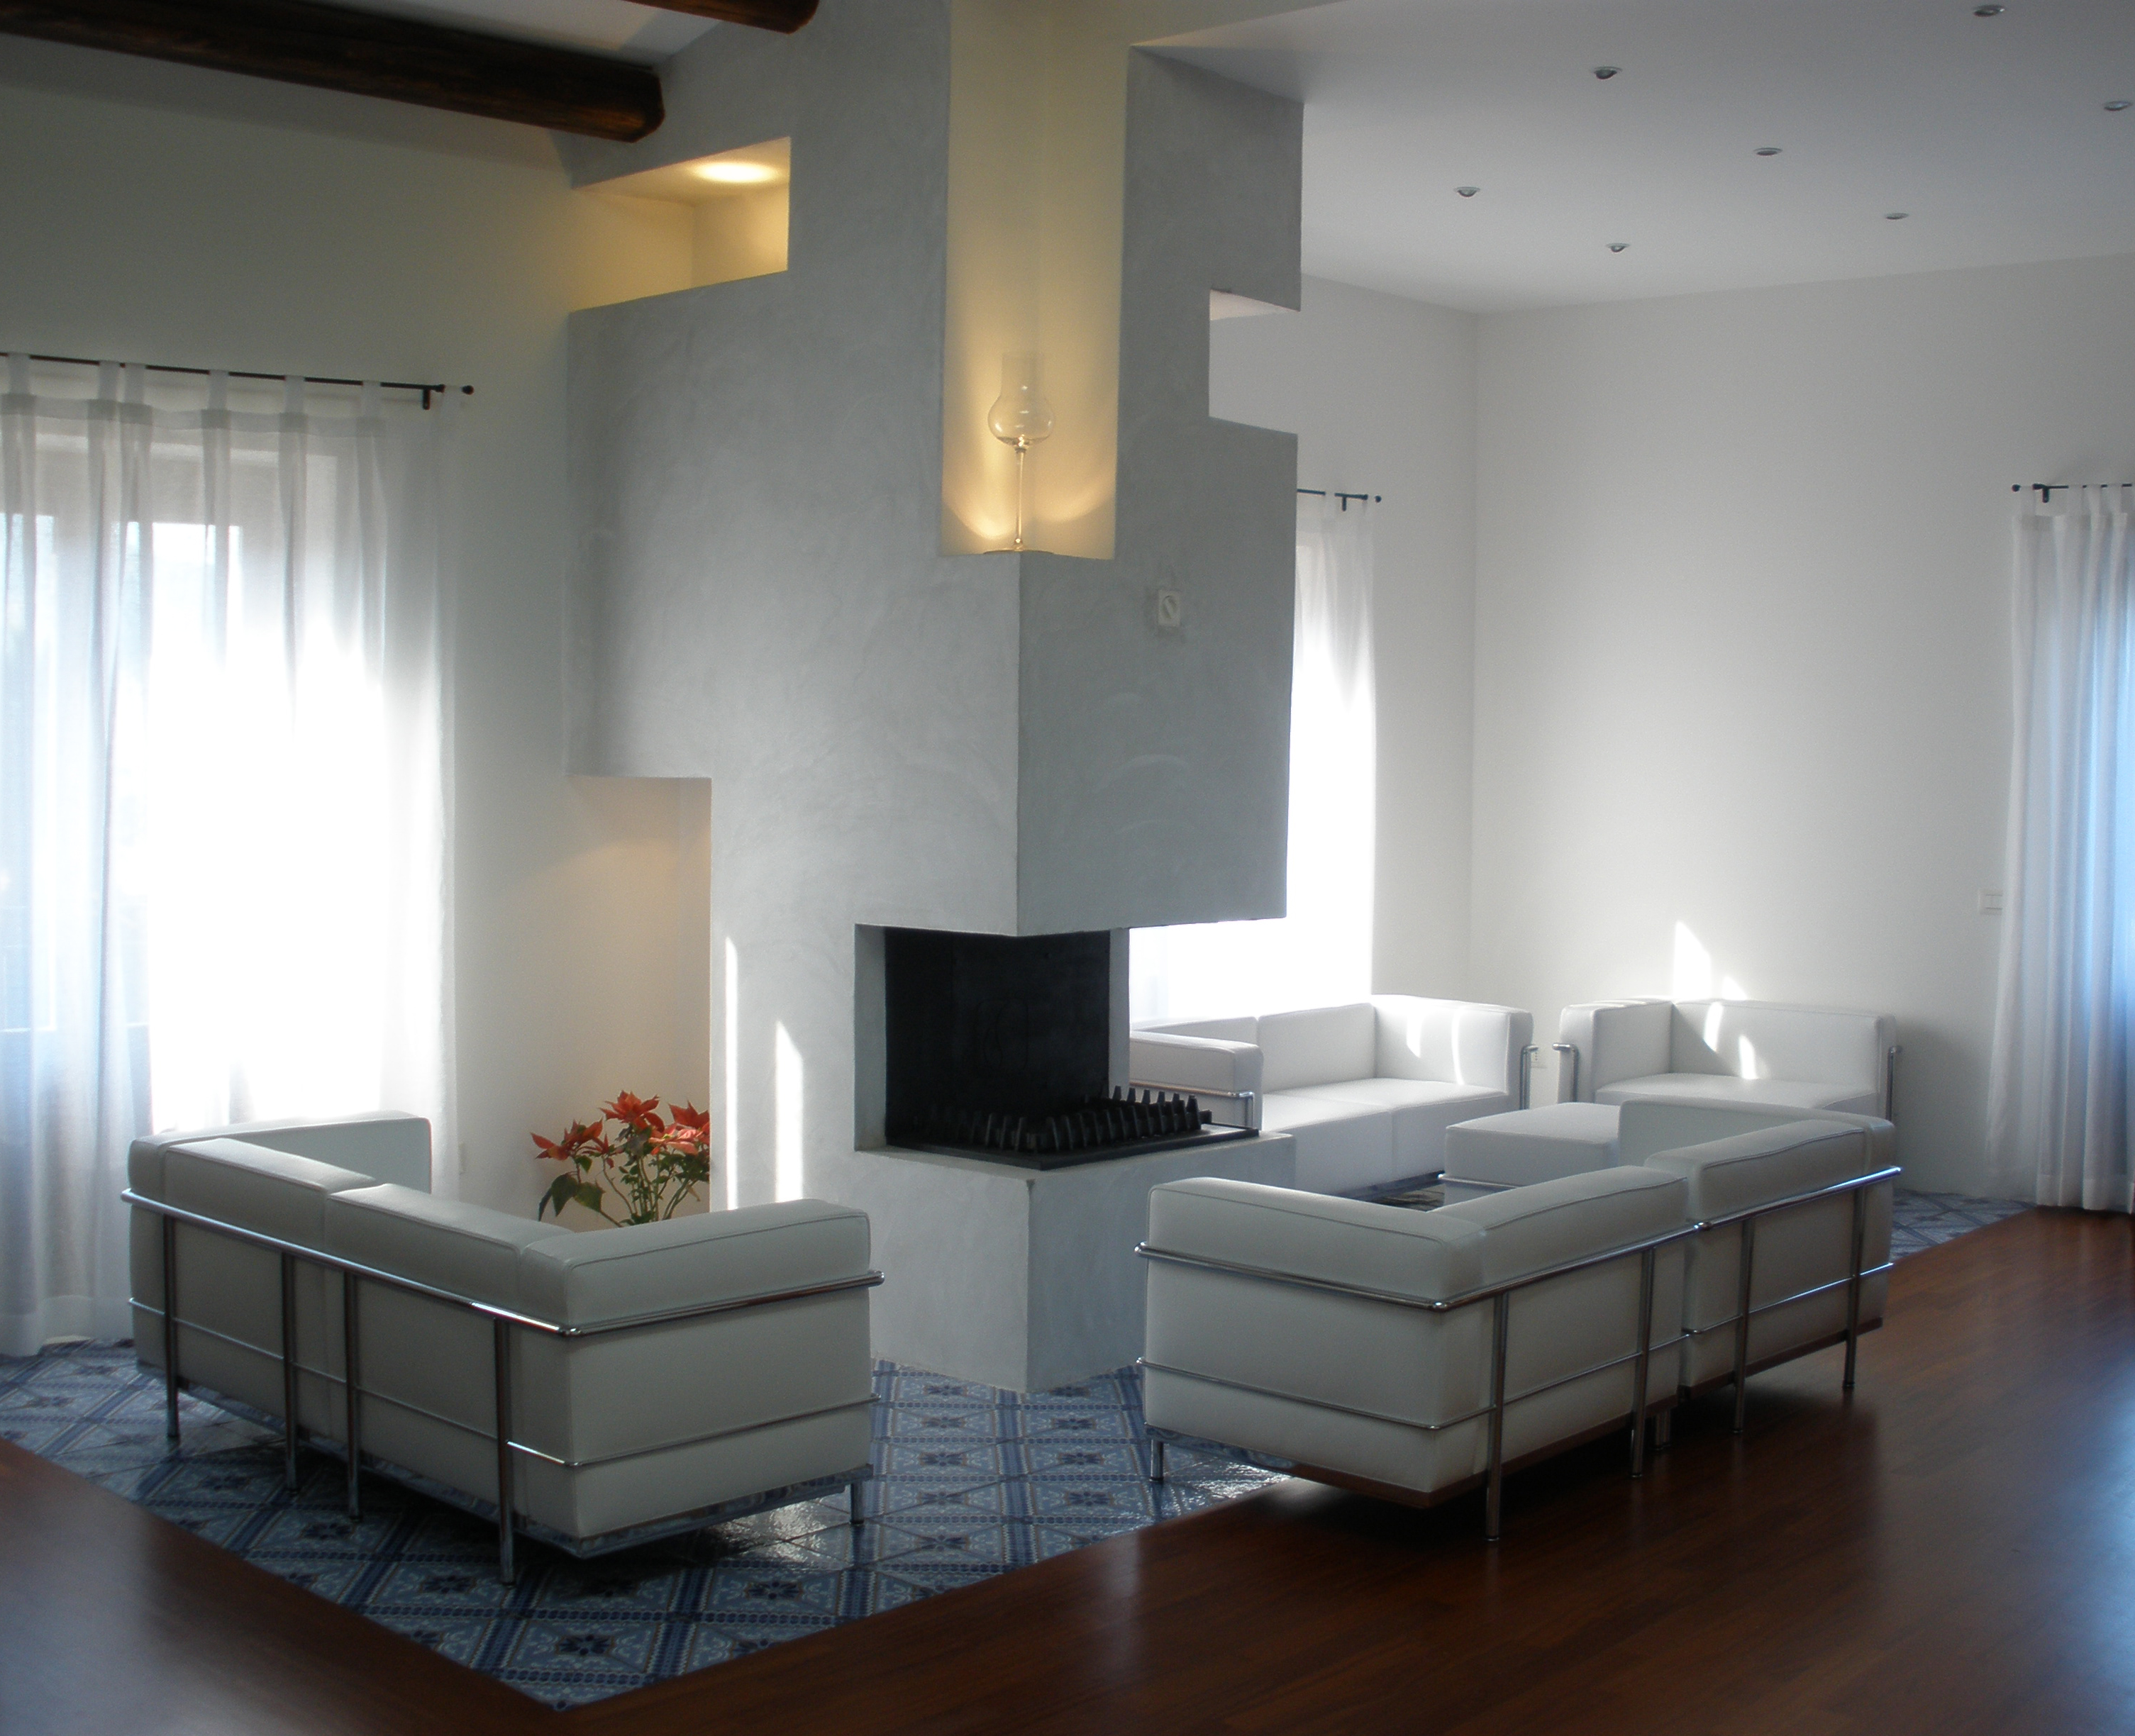 Palermo residential project